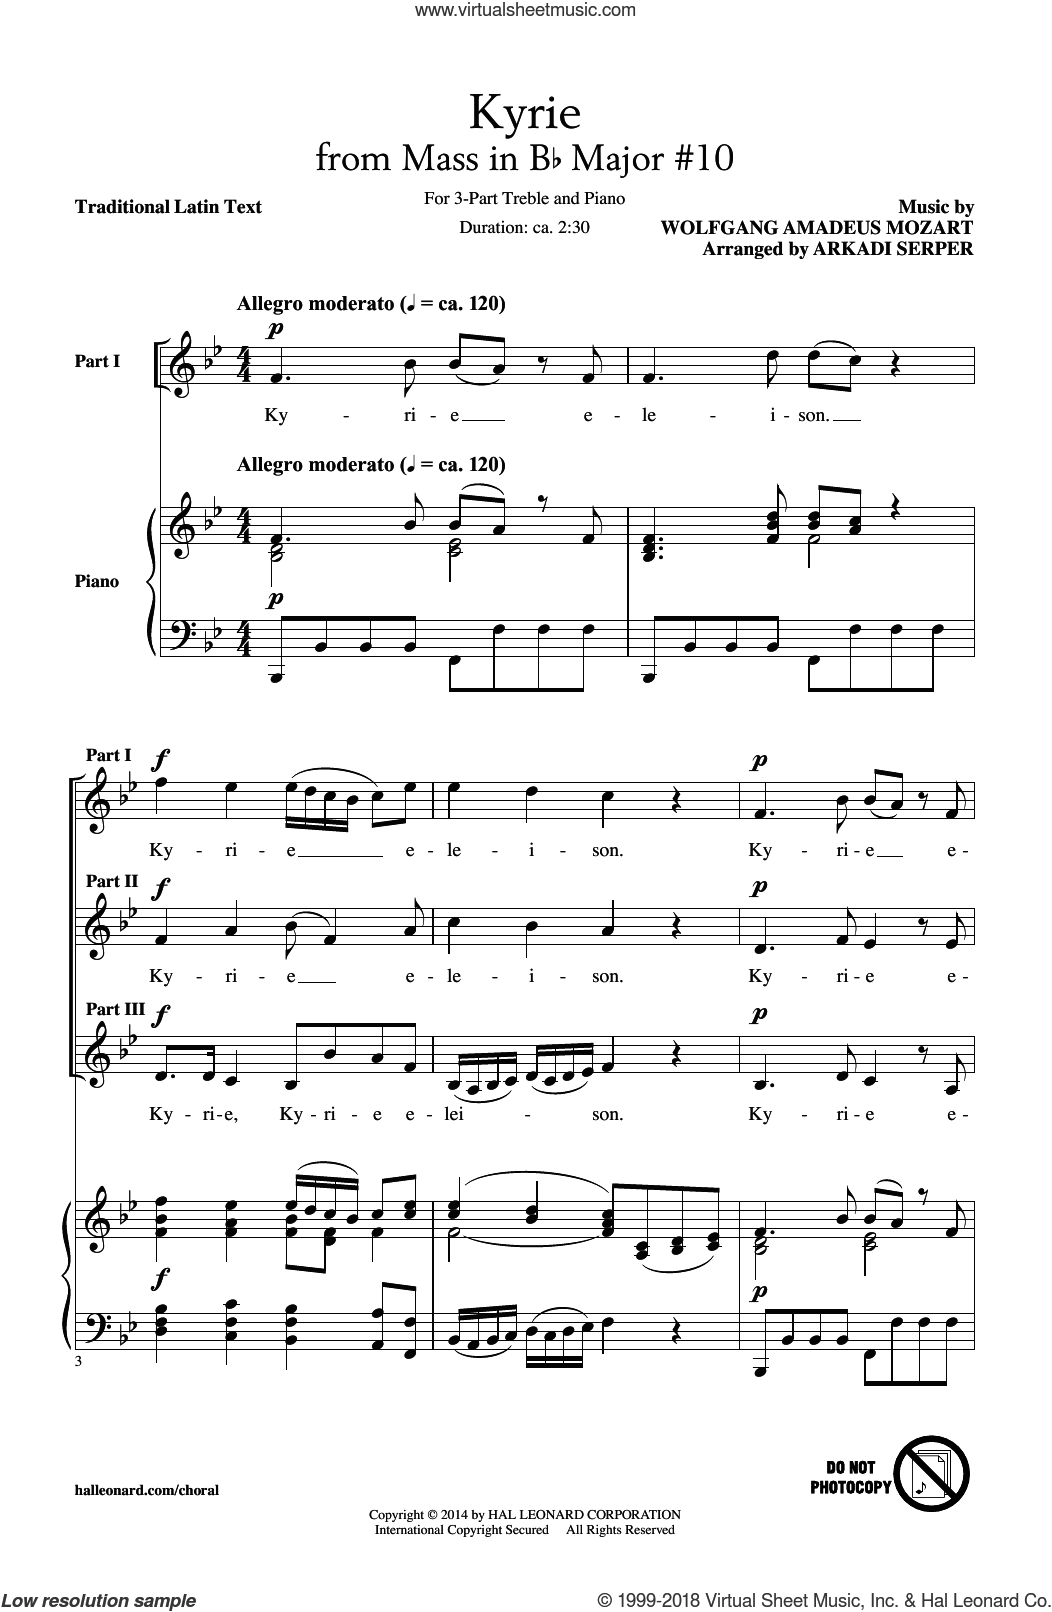 Kyrie (From The Mass In B-Flat Major #10) sheet music for choir (3-Part Treble) by Wolfgang Amadeus Mozart and Arkadi Serper, classical score, intermediate skill level